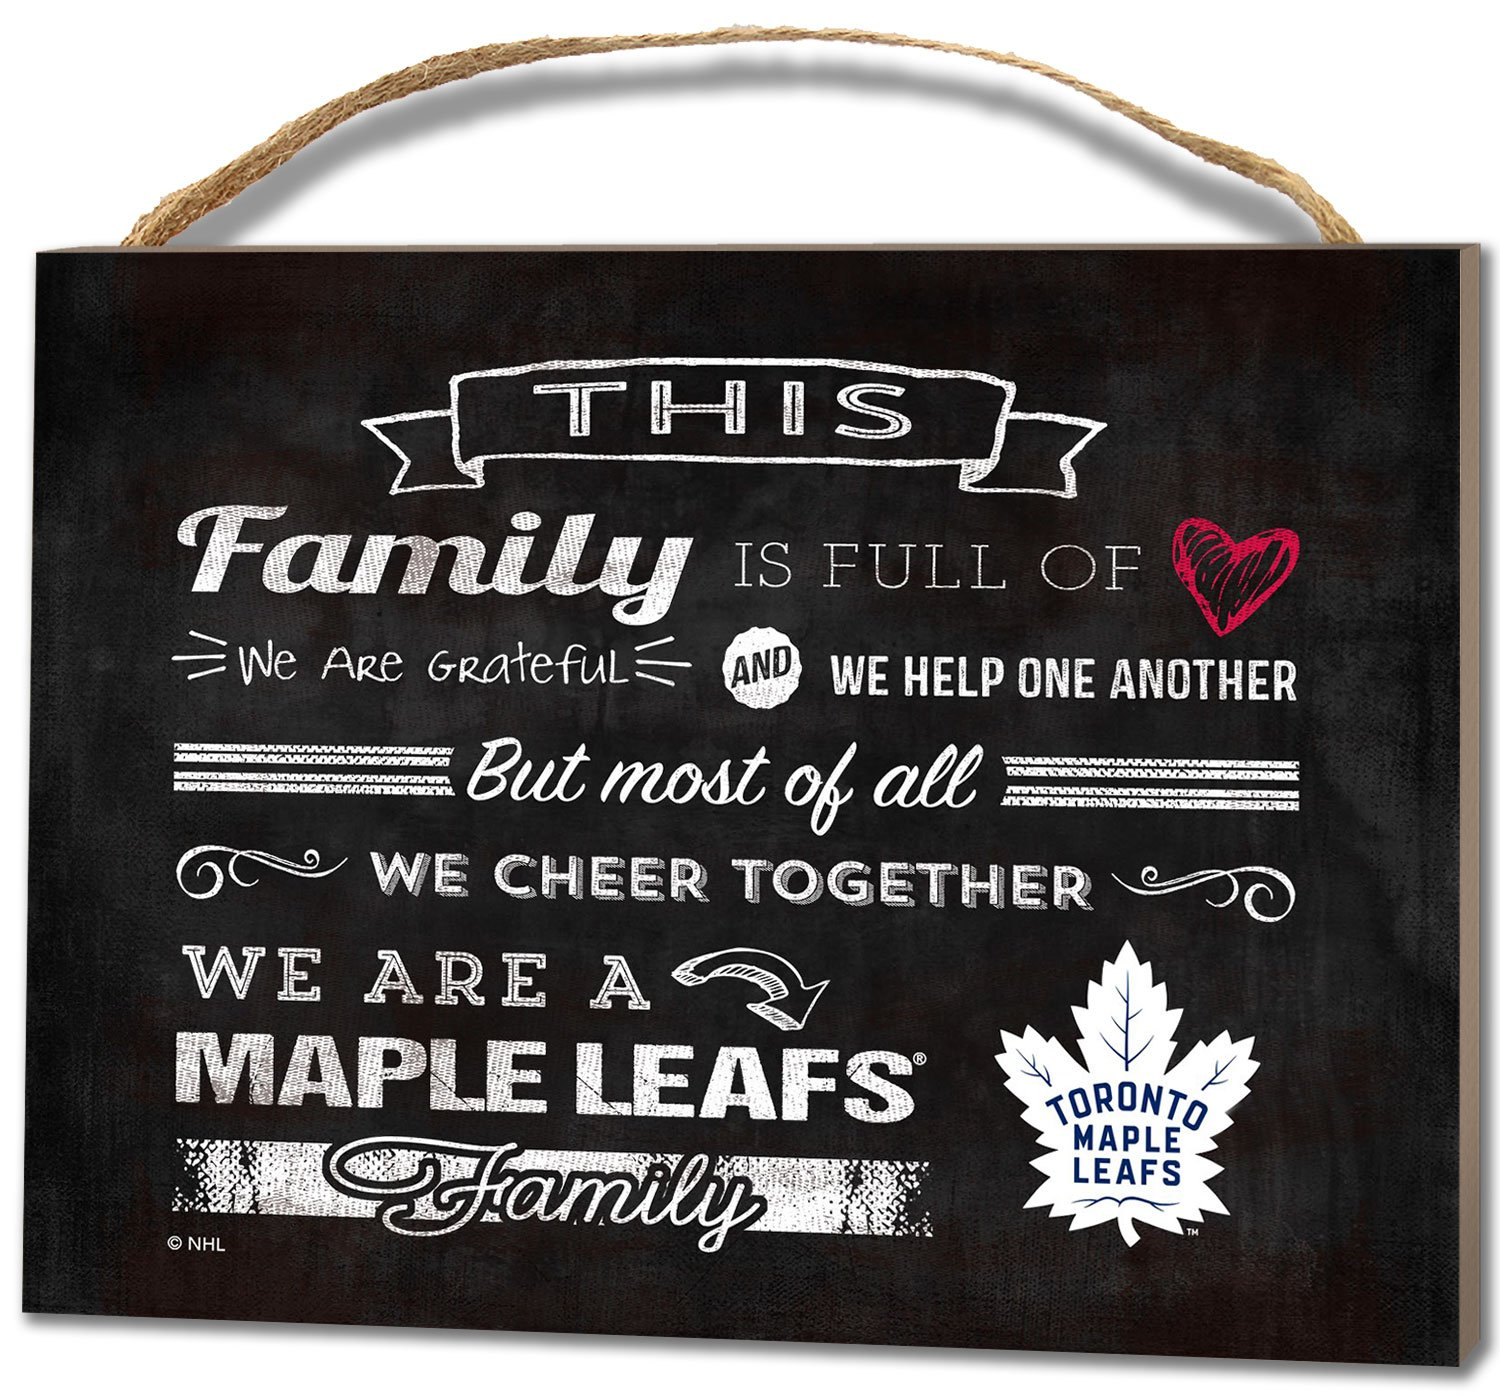 KH Sports Fan 1000100665 4x5.5 Toronto Maple Leafs Family Cheer Small NHL Plaque